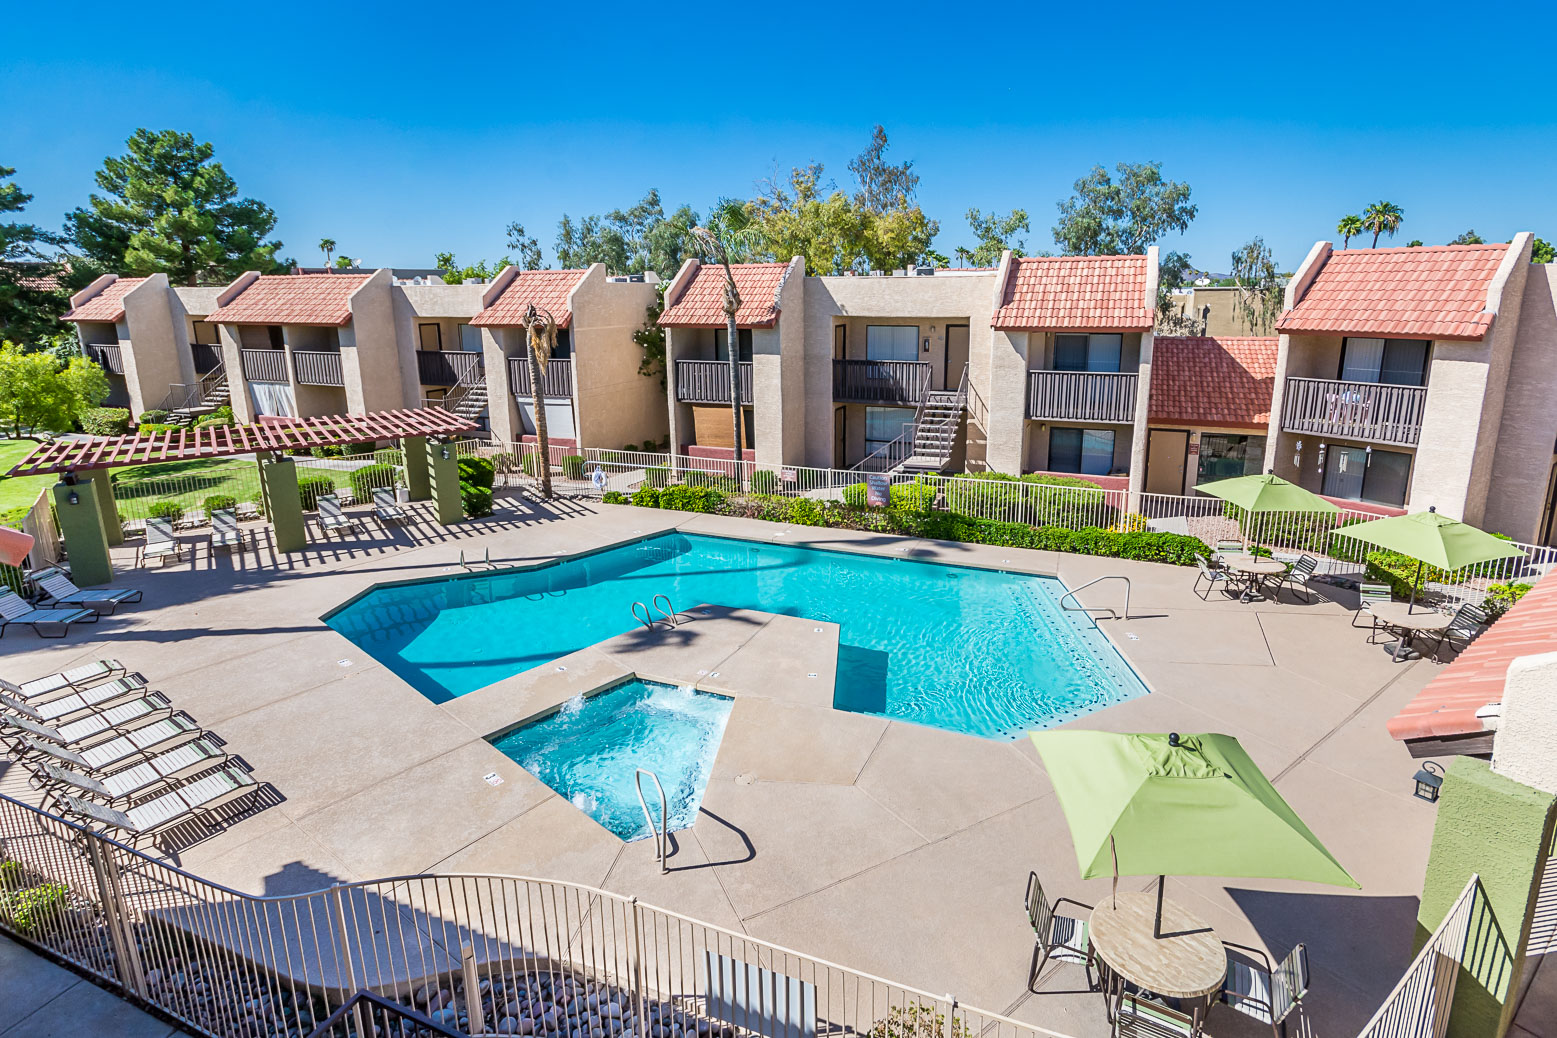 Glenridge Apts - Pool - Online-3